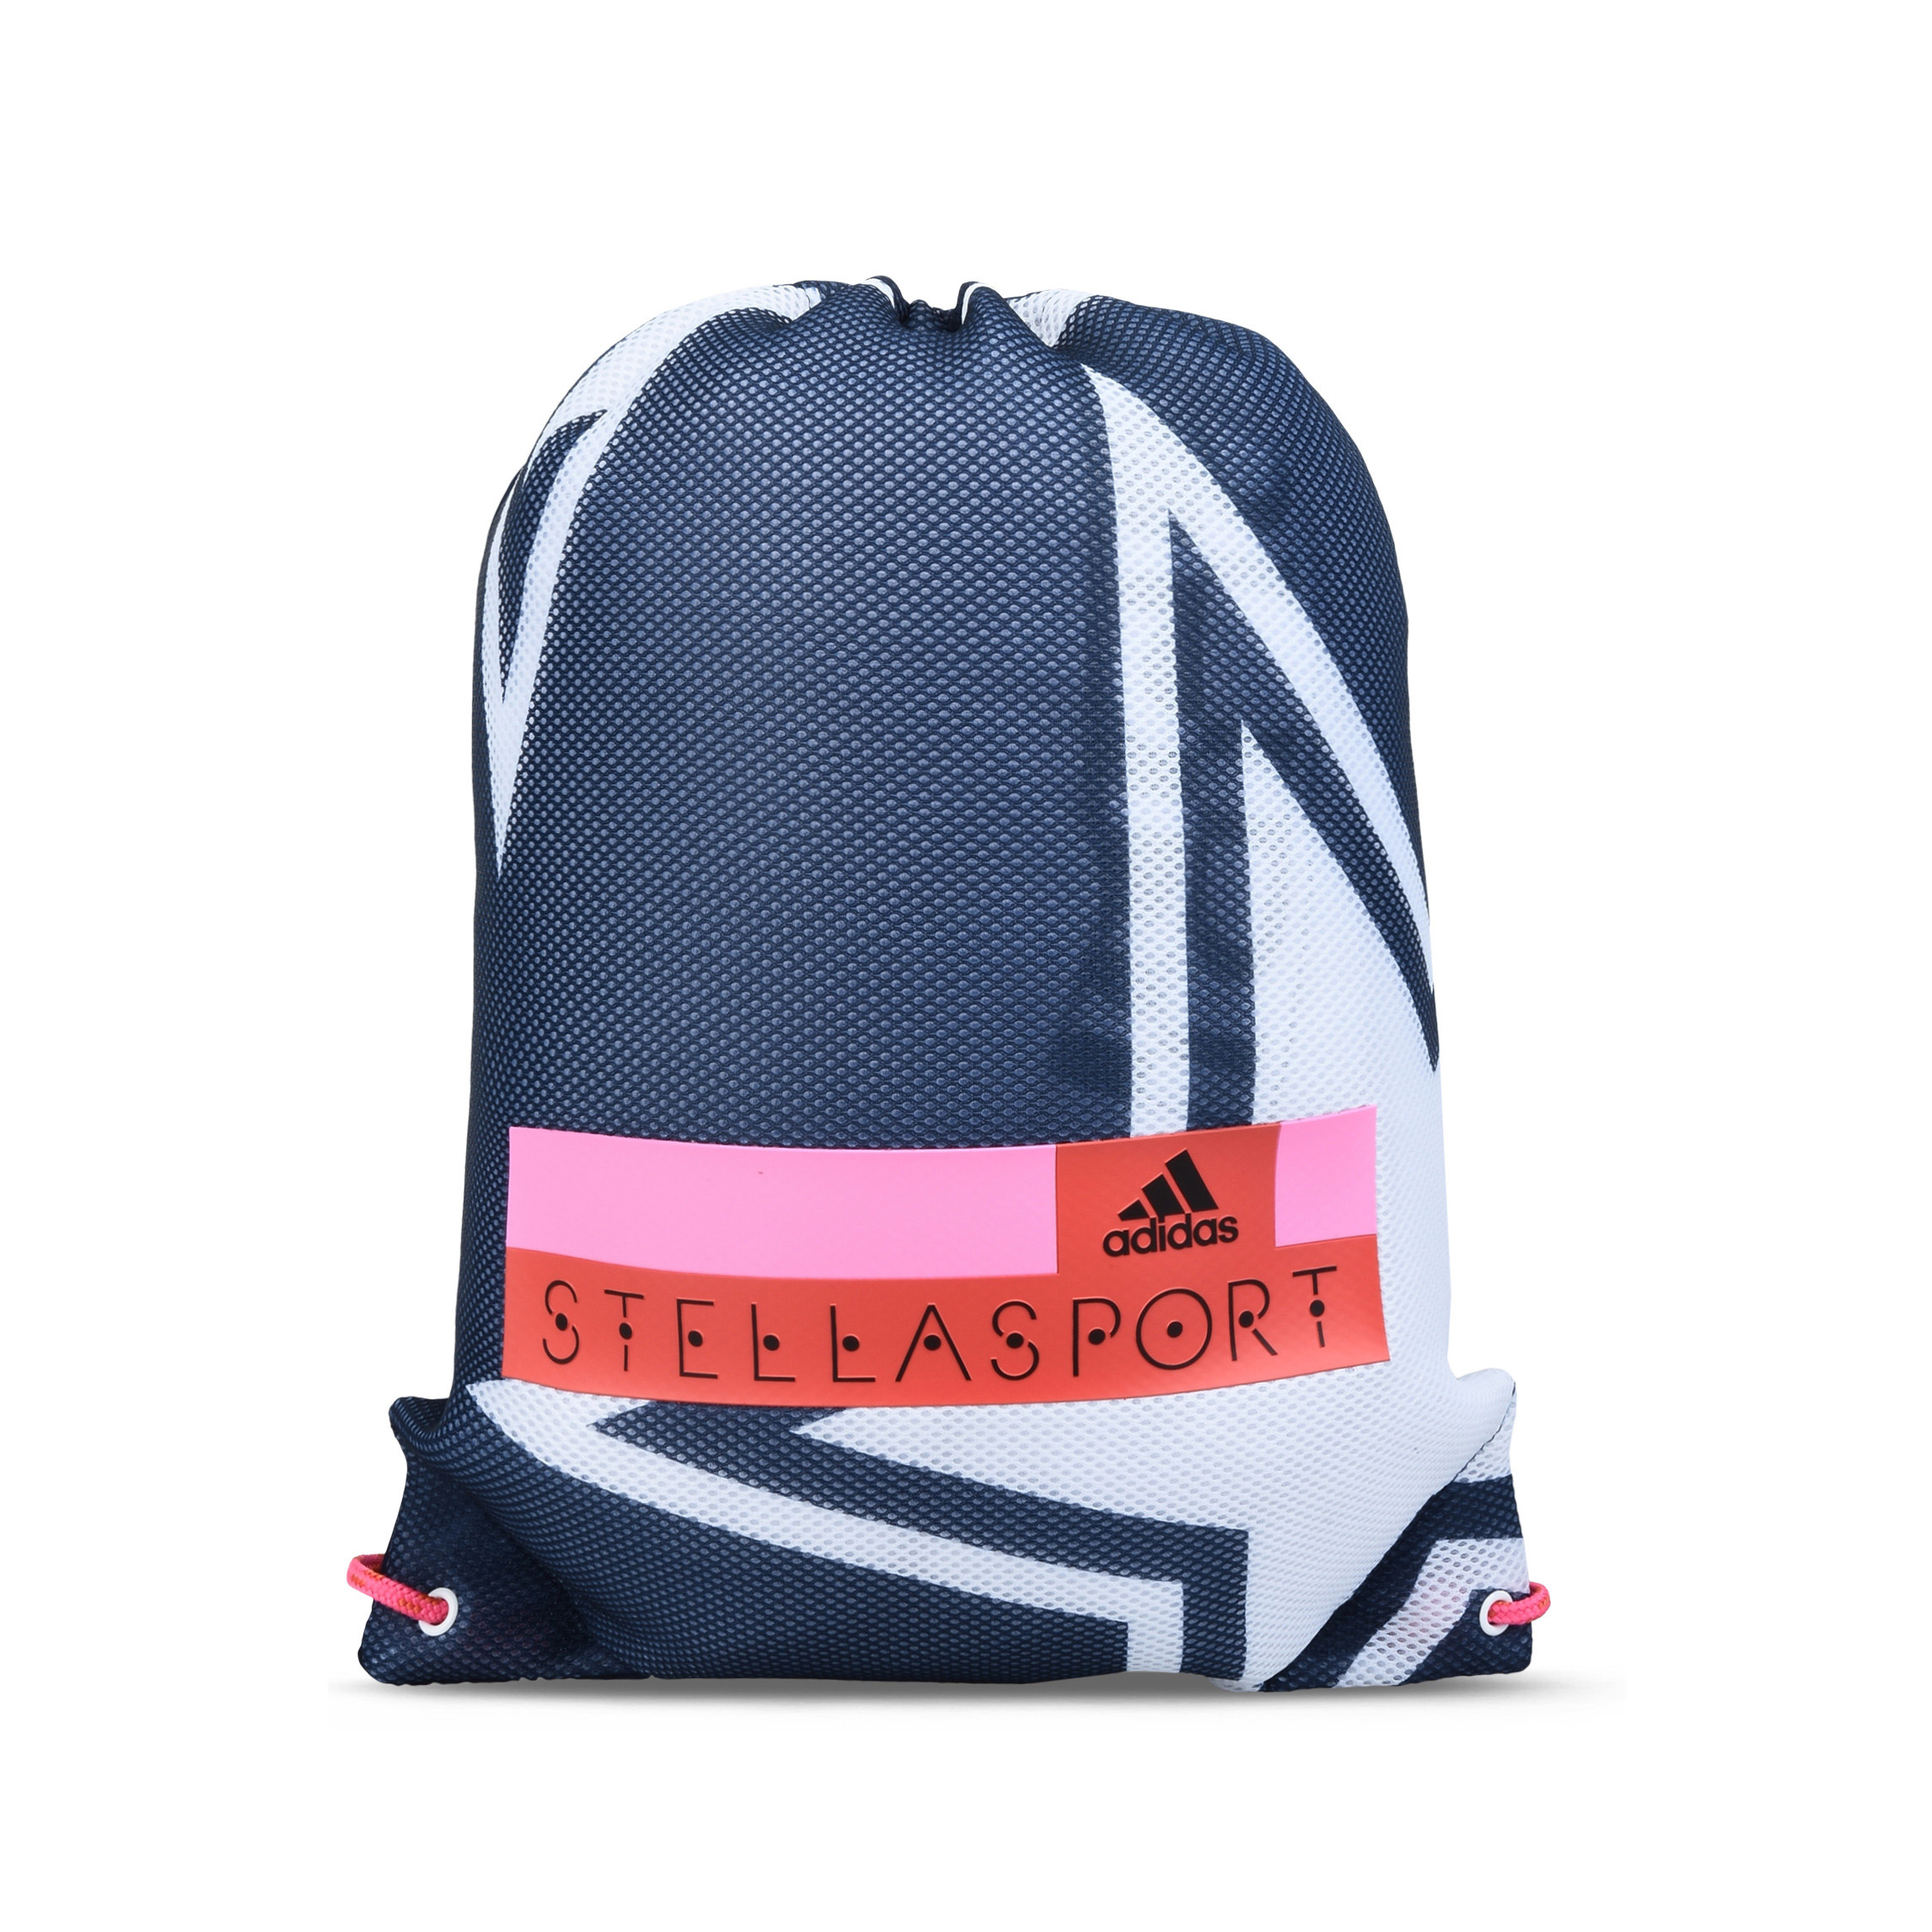 13 Best Gym Bags For Women 2017 Stylish And Functional